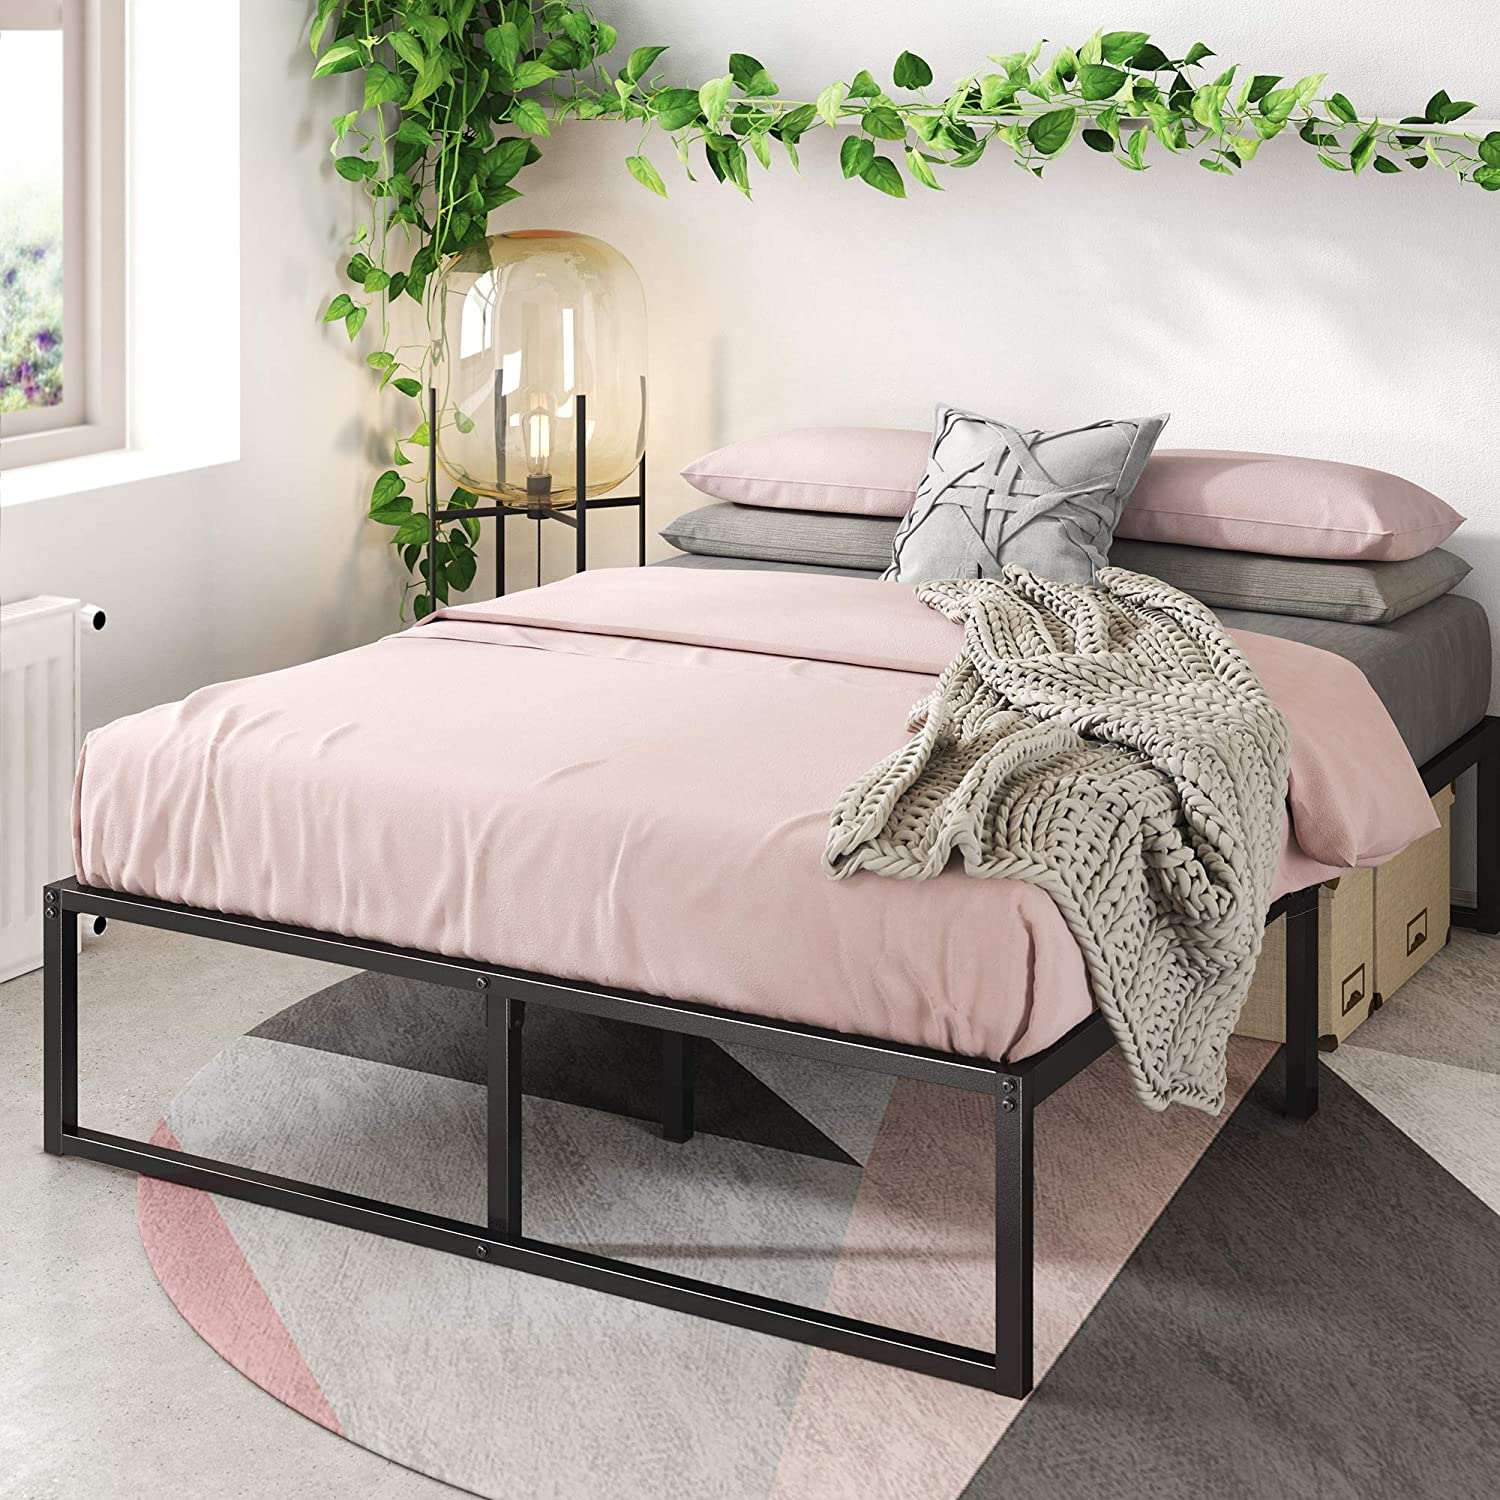 Zinus Lorelai 14 Inch Metal Platform Bed Frame Steel Slat Support No Box Spring Needed Underbed Storage Space Easy Assembly Full Furniture Decor